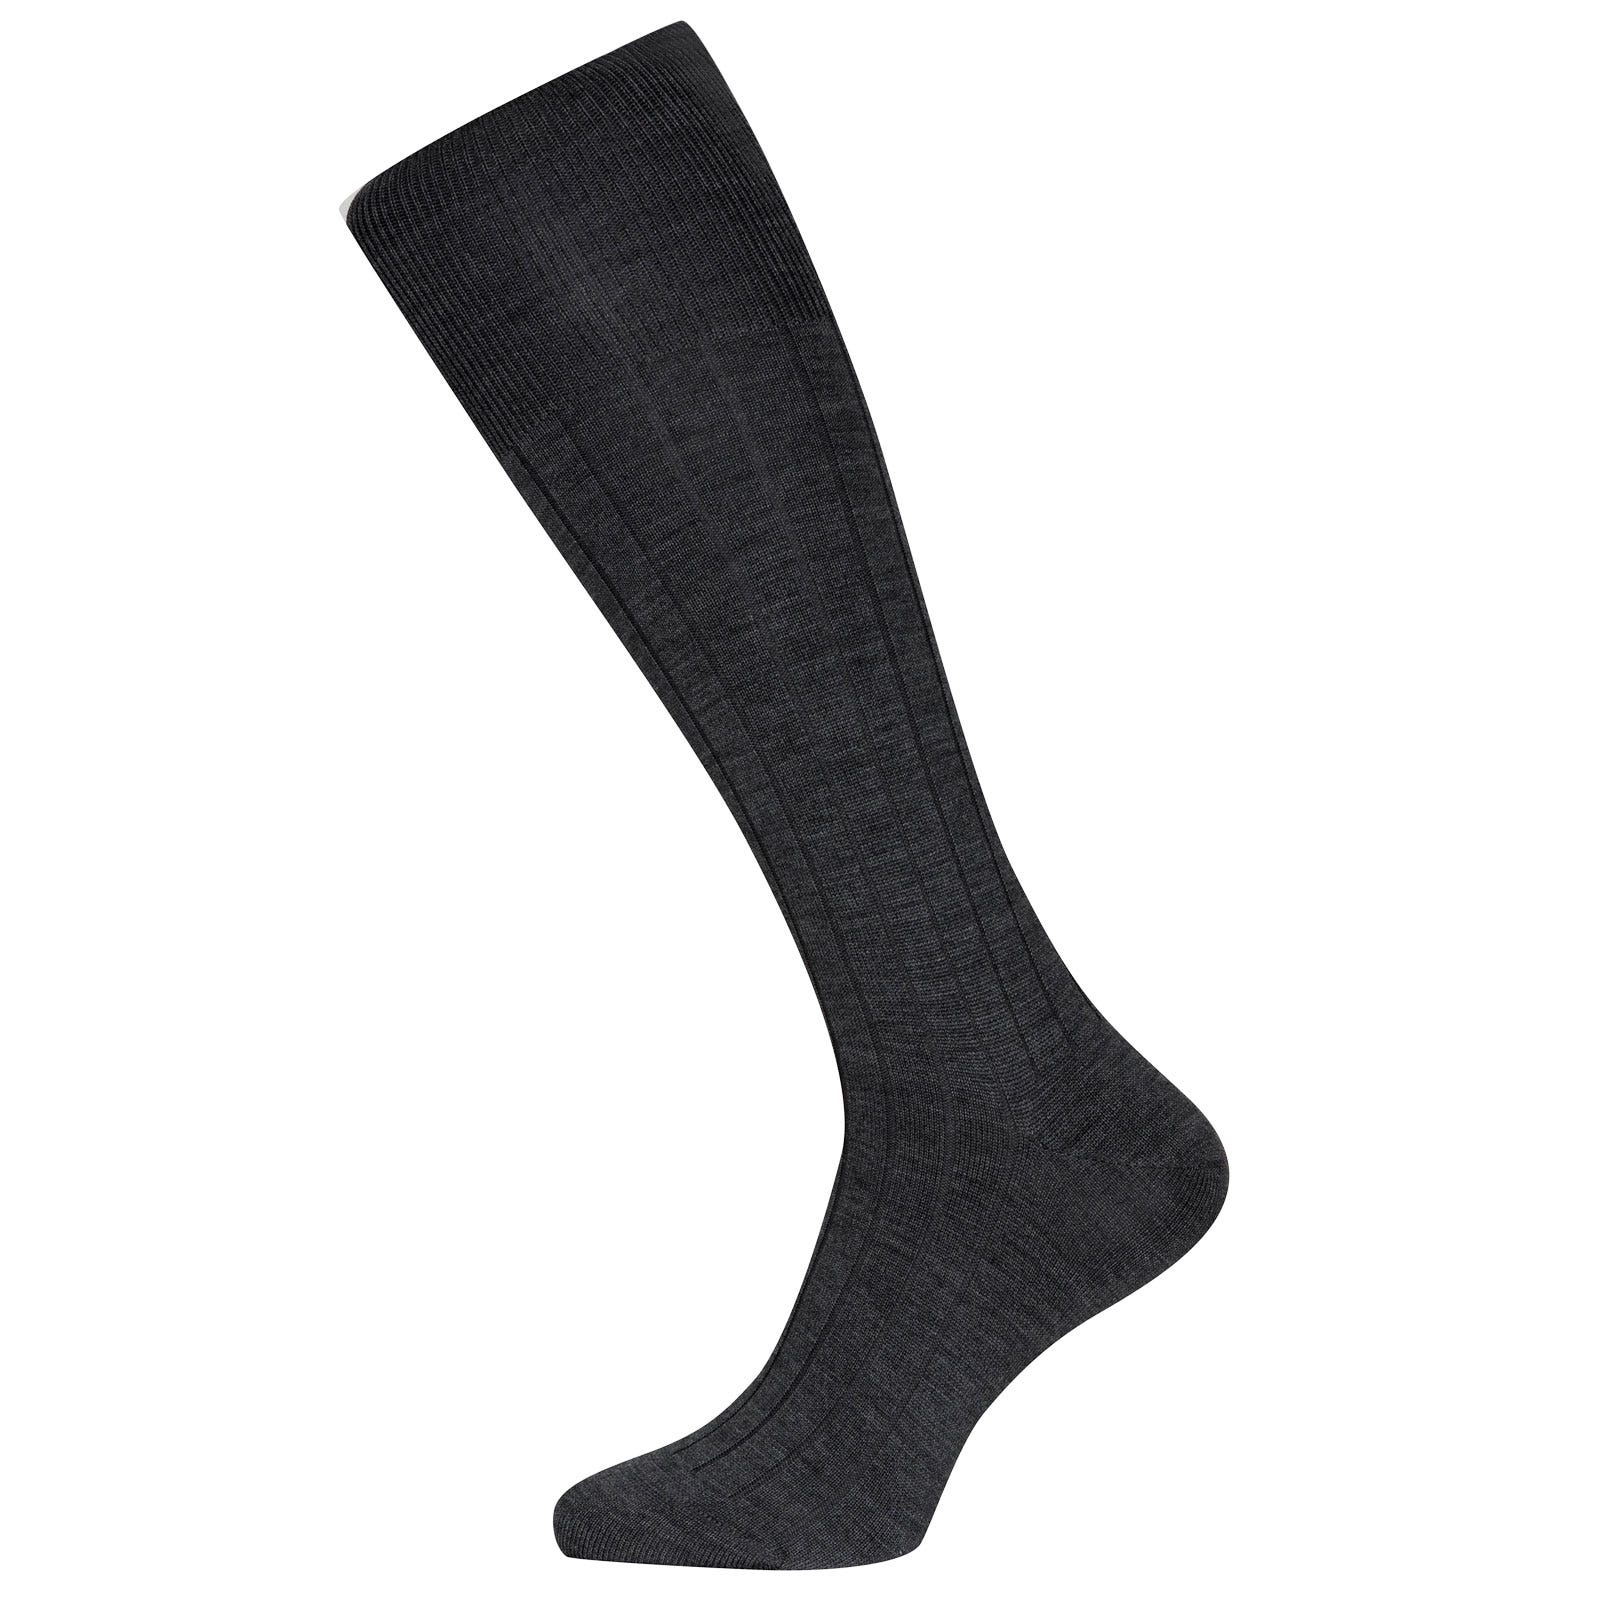 John Smedley Ebury Merino Wool Socks in Charcoal-S/M